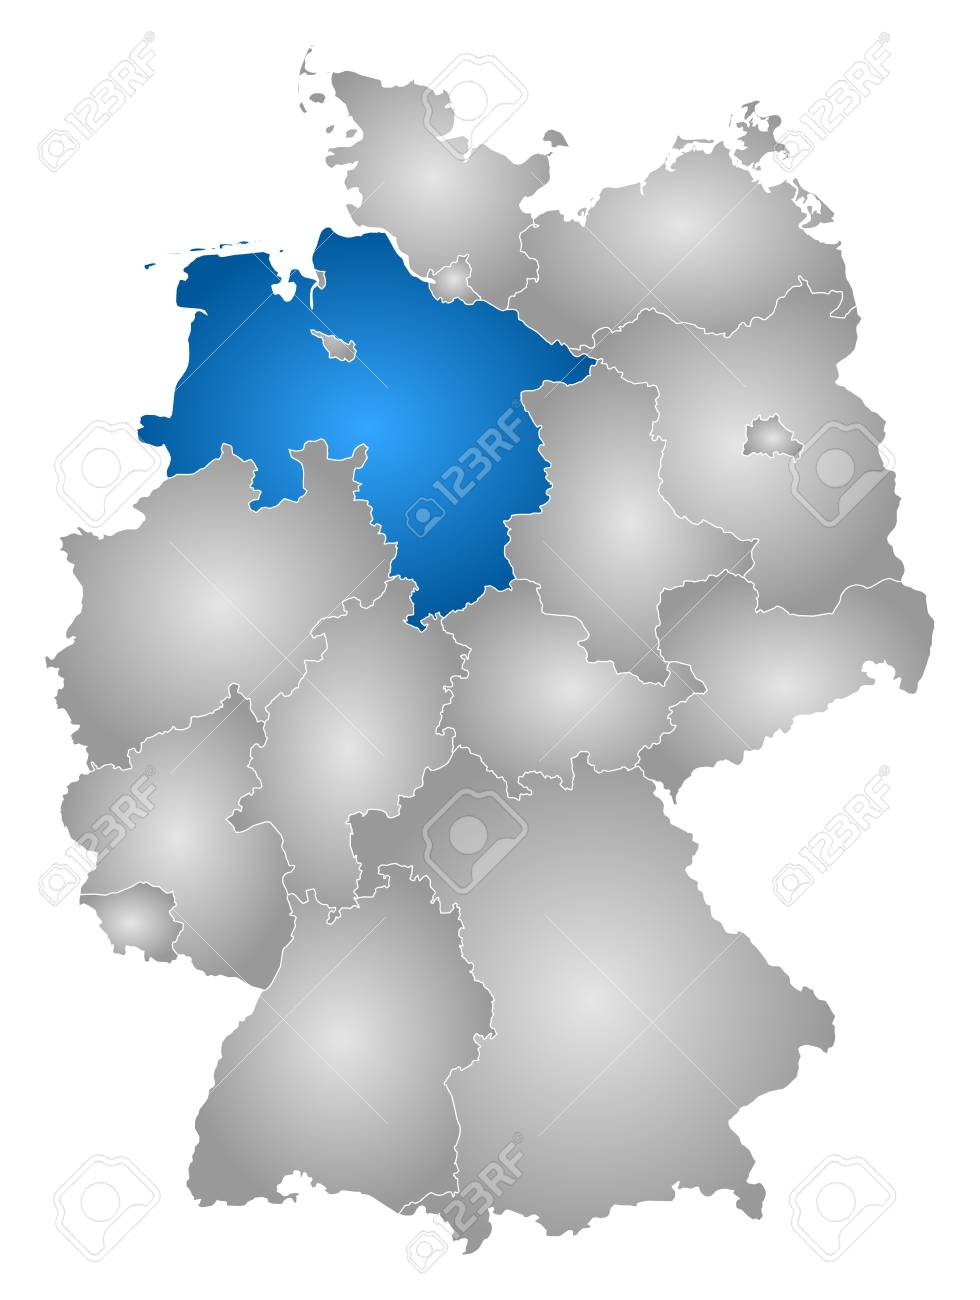 Map of Germany with the provinces, filled with a radial grant,.. Germany Provinces Map on germany industry map, germany political map, germany cities map, germany travel map, germany landmark map, germany water map, east germany map, germany major city map, germany surname map, germany country map, germany latitude map, germany power map, germany world map, germany located on map, germany road map, germany capital map, germany culture map, germany map with states, germany region map, germany postal map,